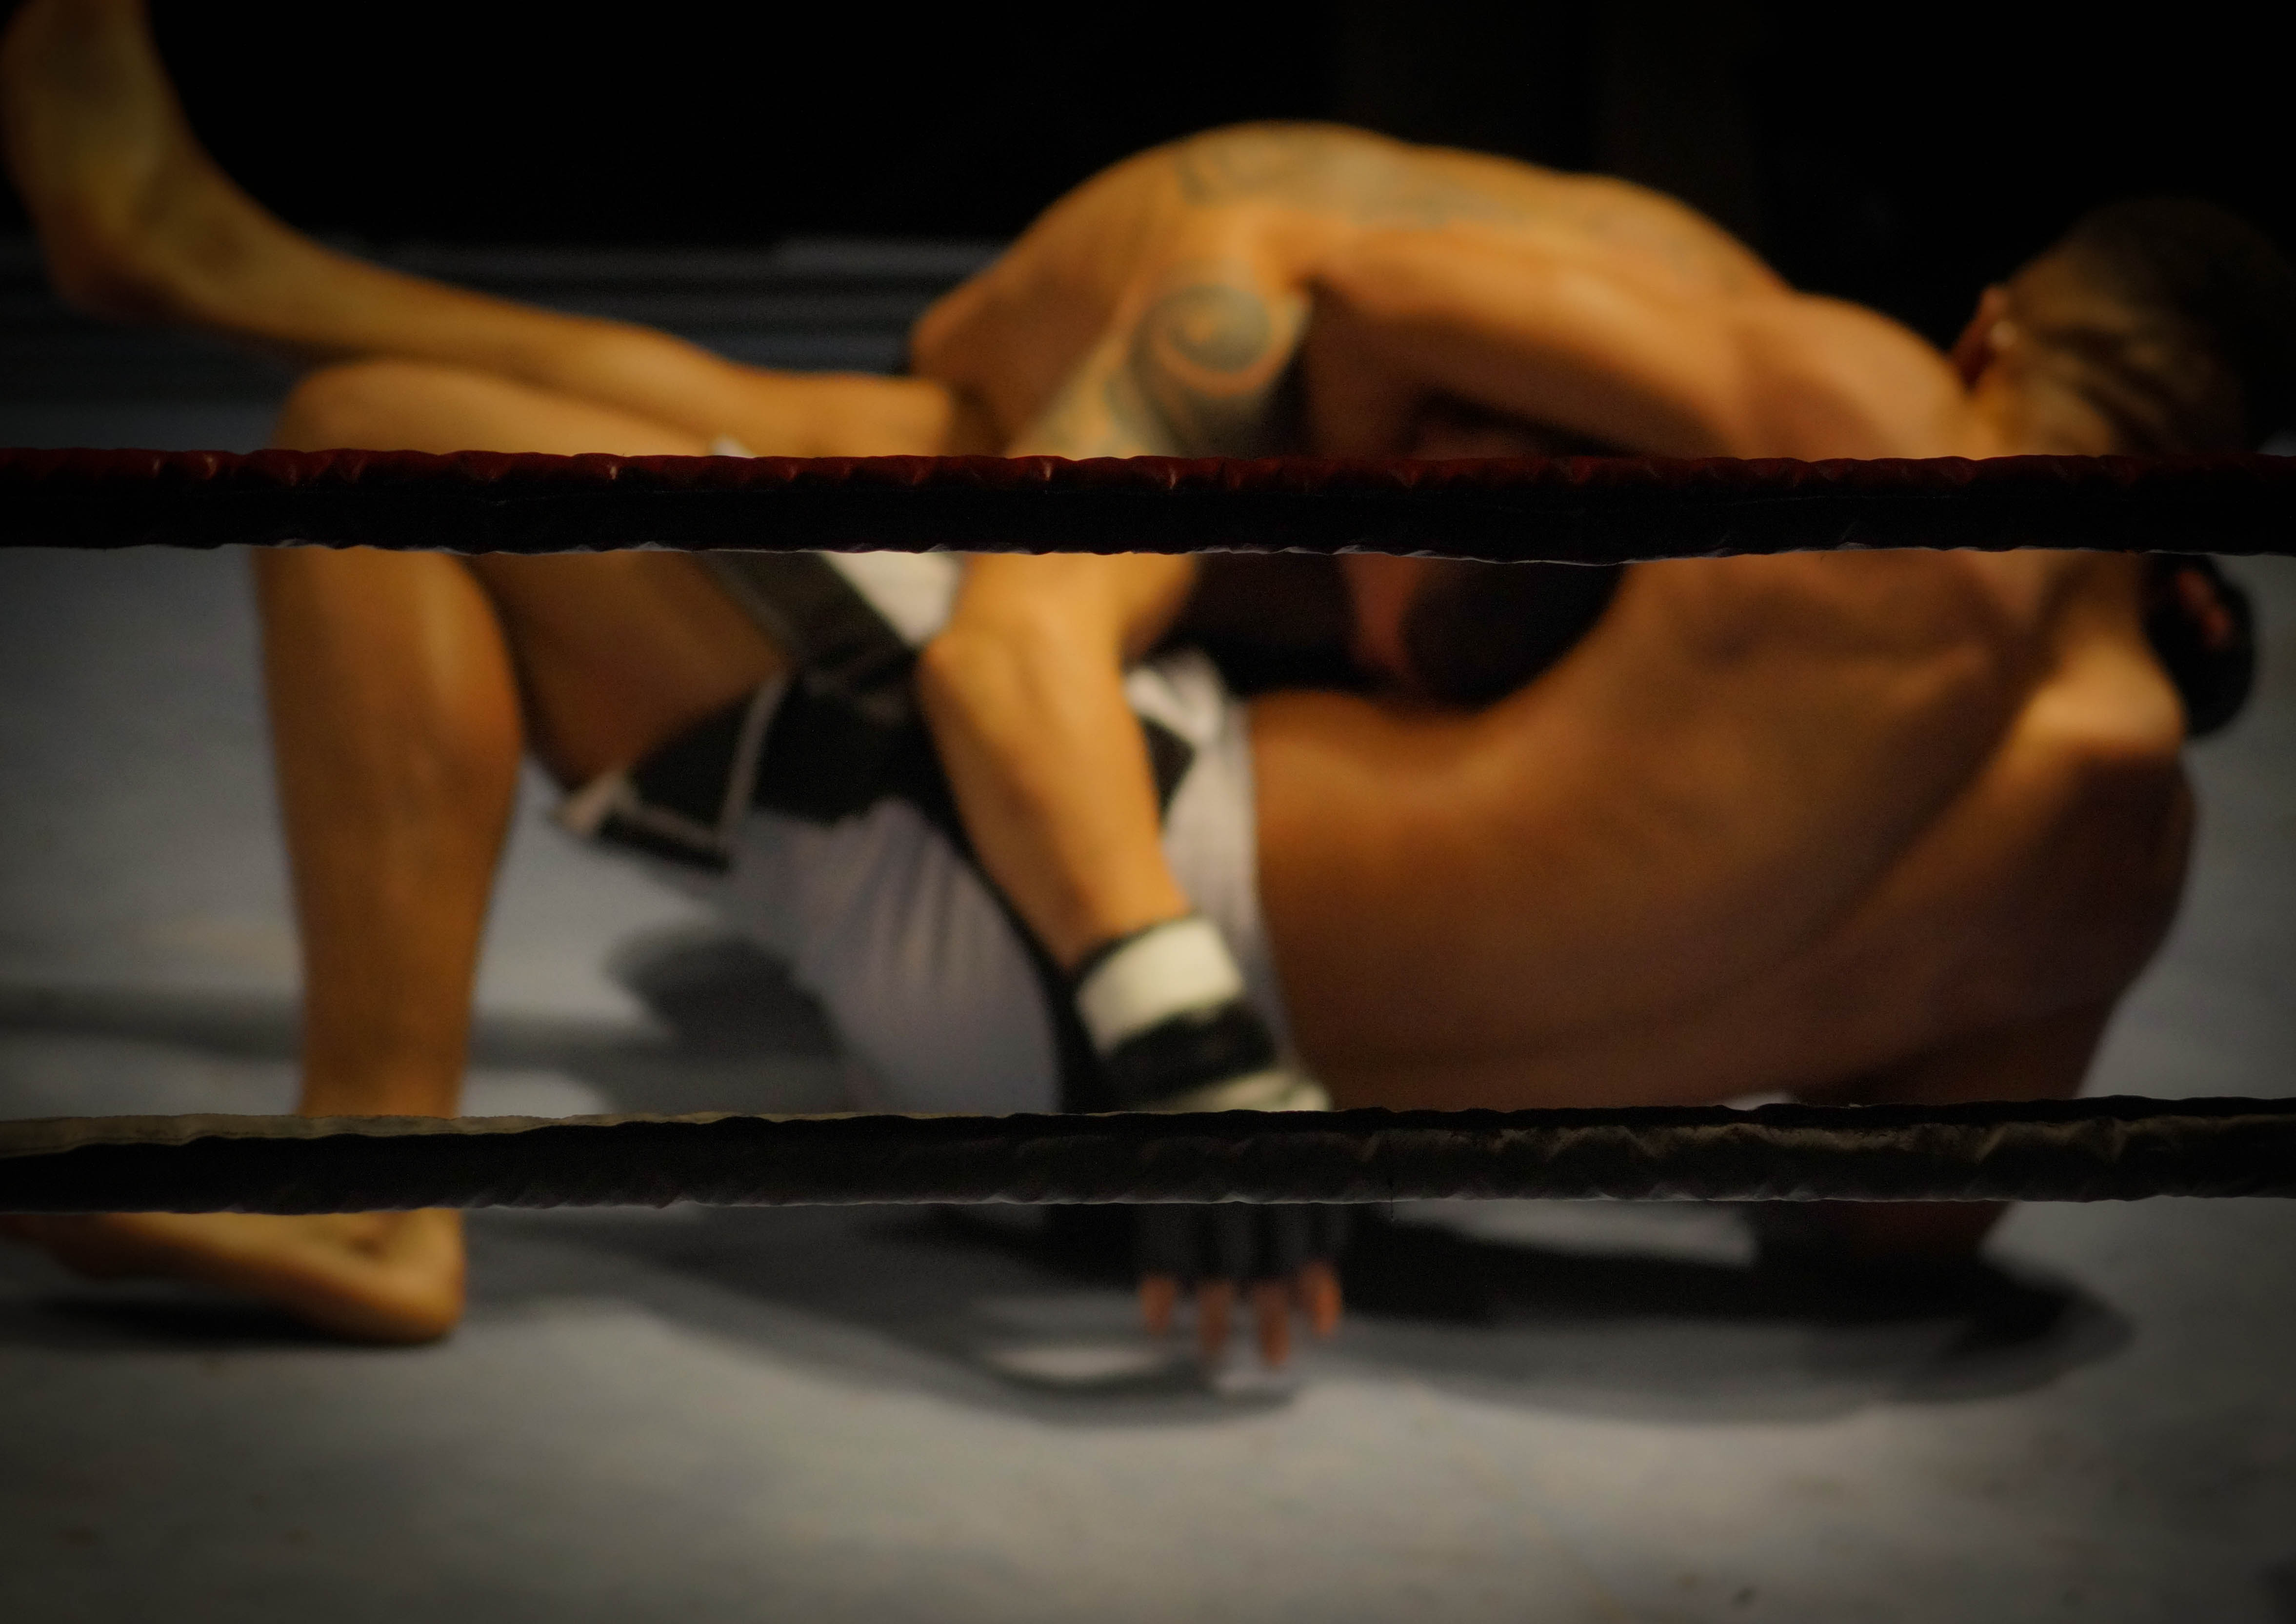 Okay, so this pic is MMA. You've heard of that one.